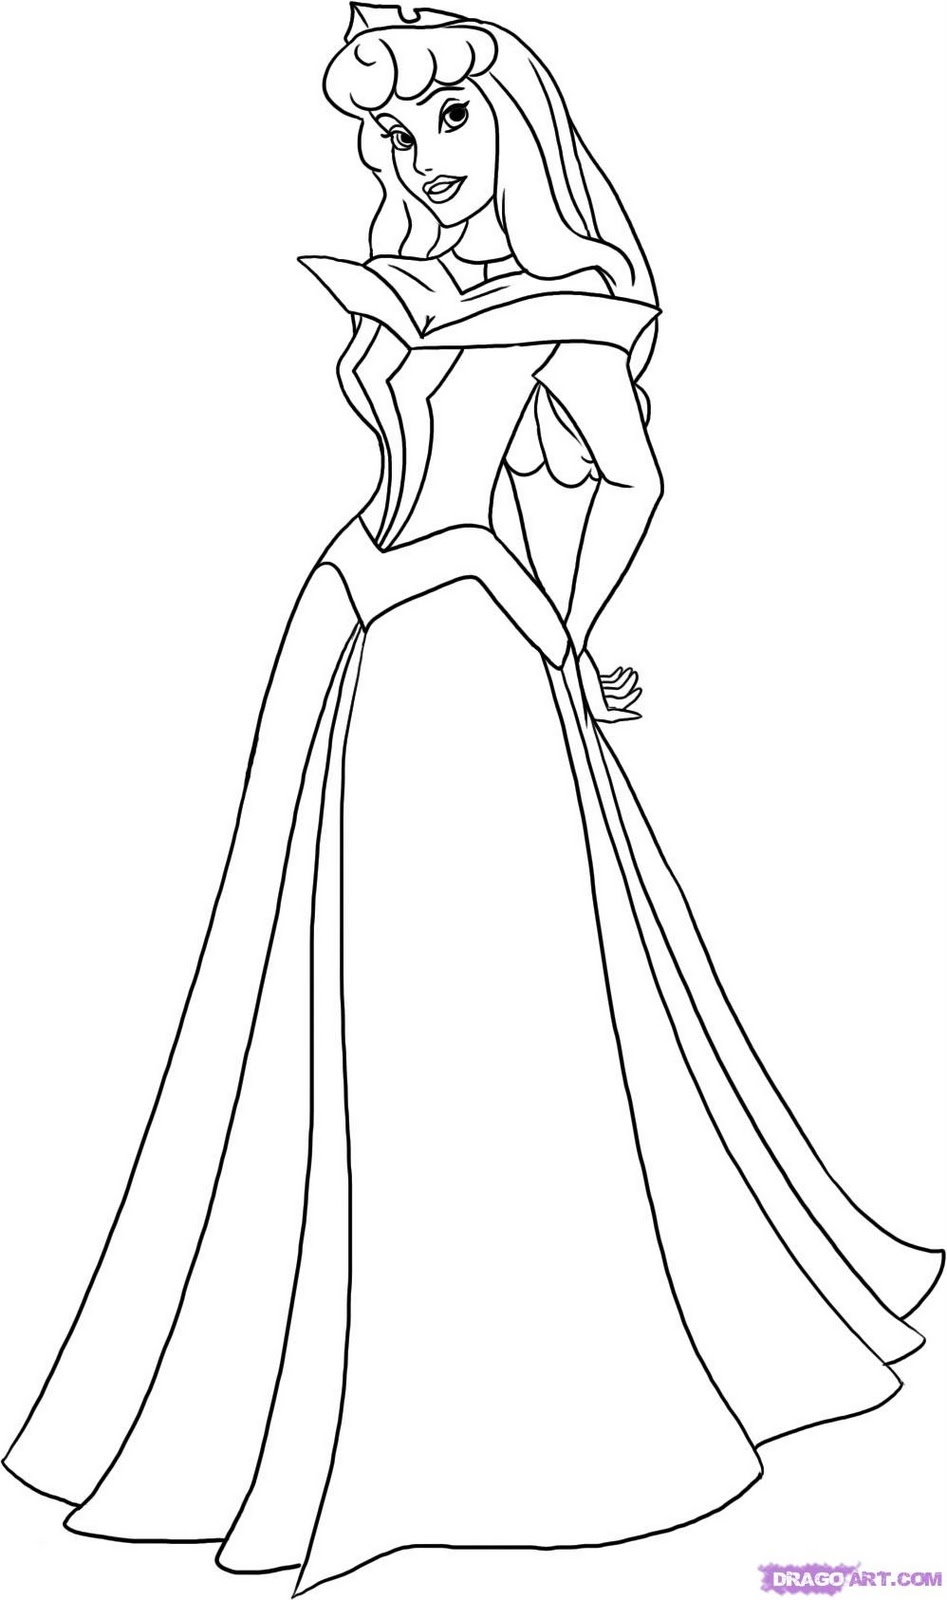 disney aurora coloring pages - photo#27